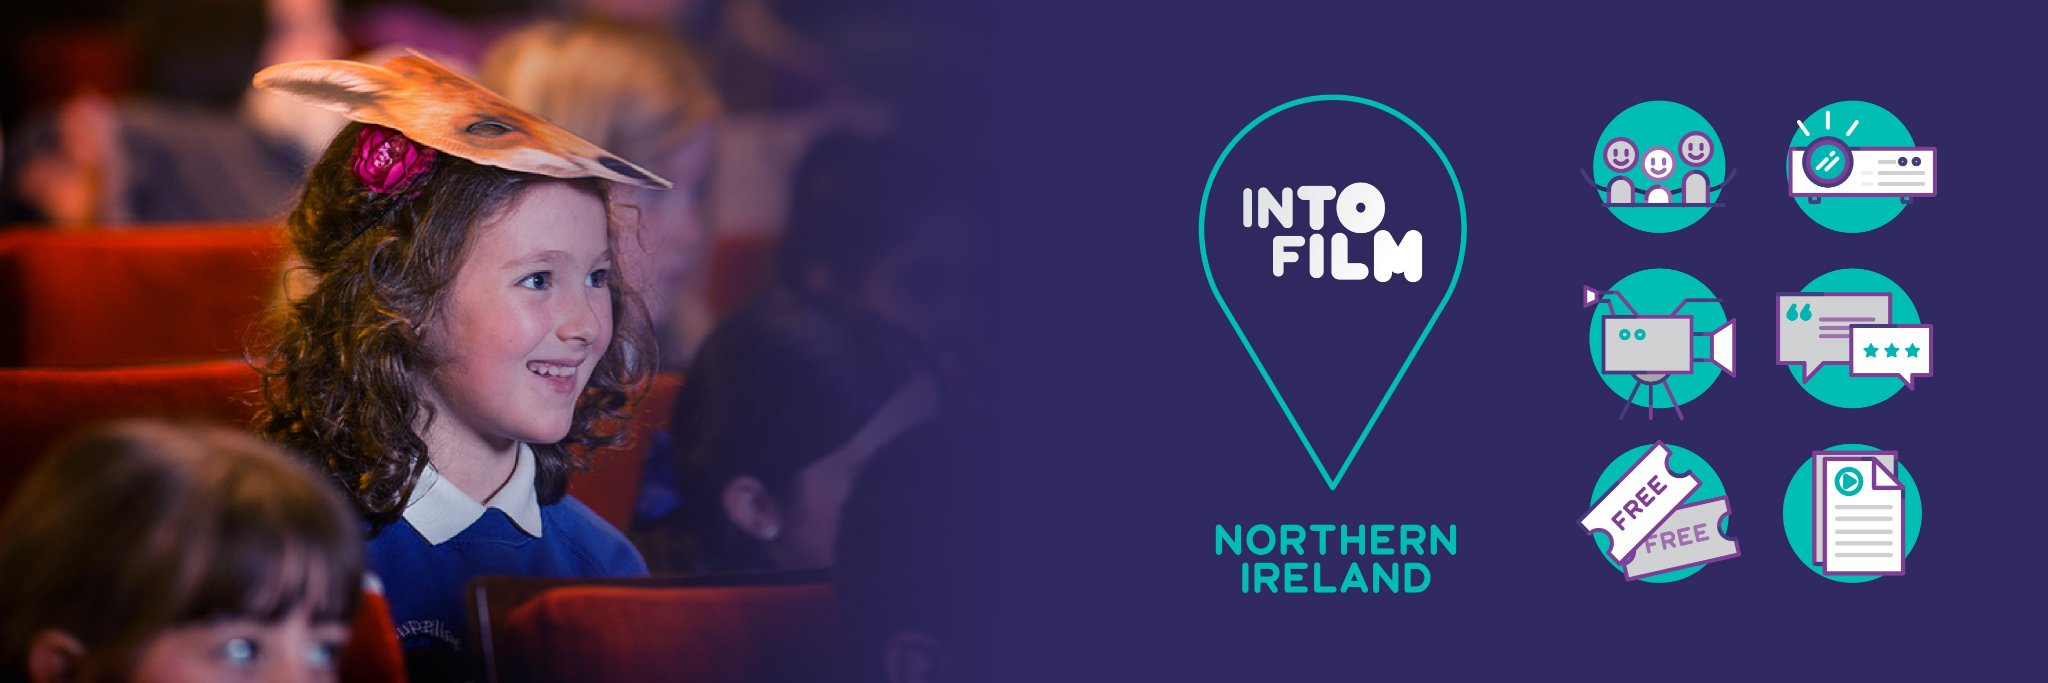 Last chance to nominate a local school for our Festive Film Club bundle, stuffed with Christmas movies, books & tre… https://t.co/QzkB5EBp2e